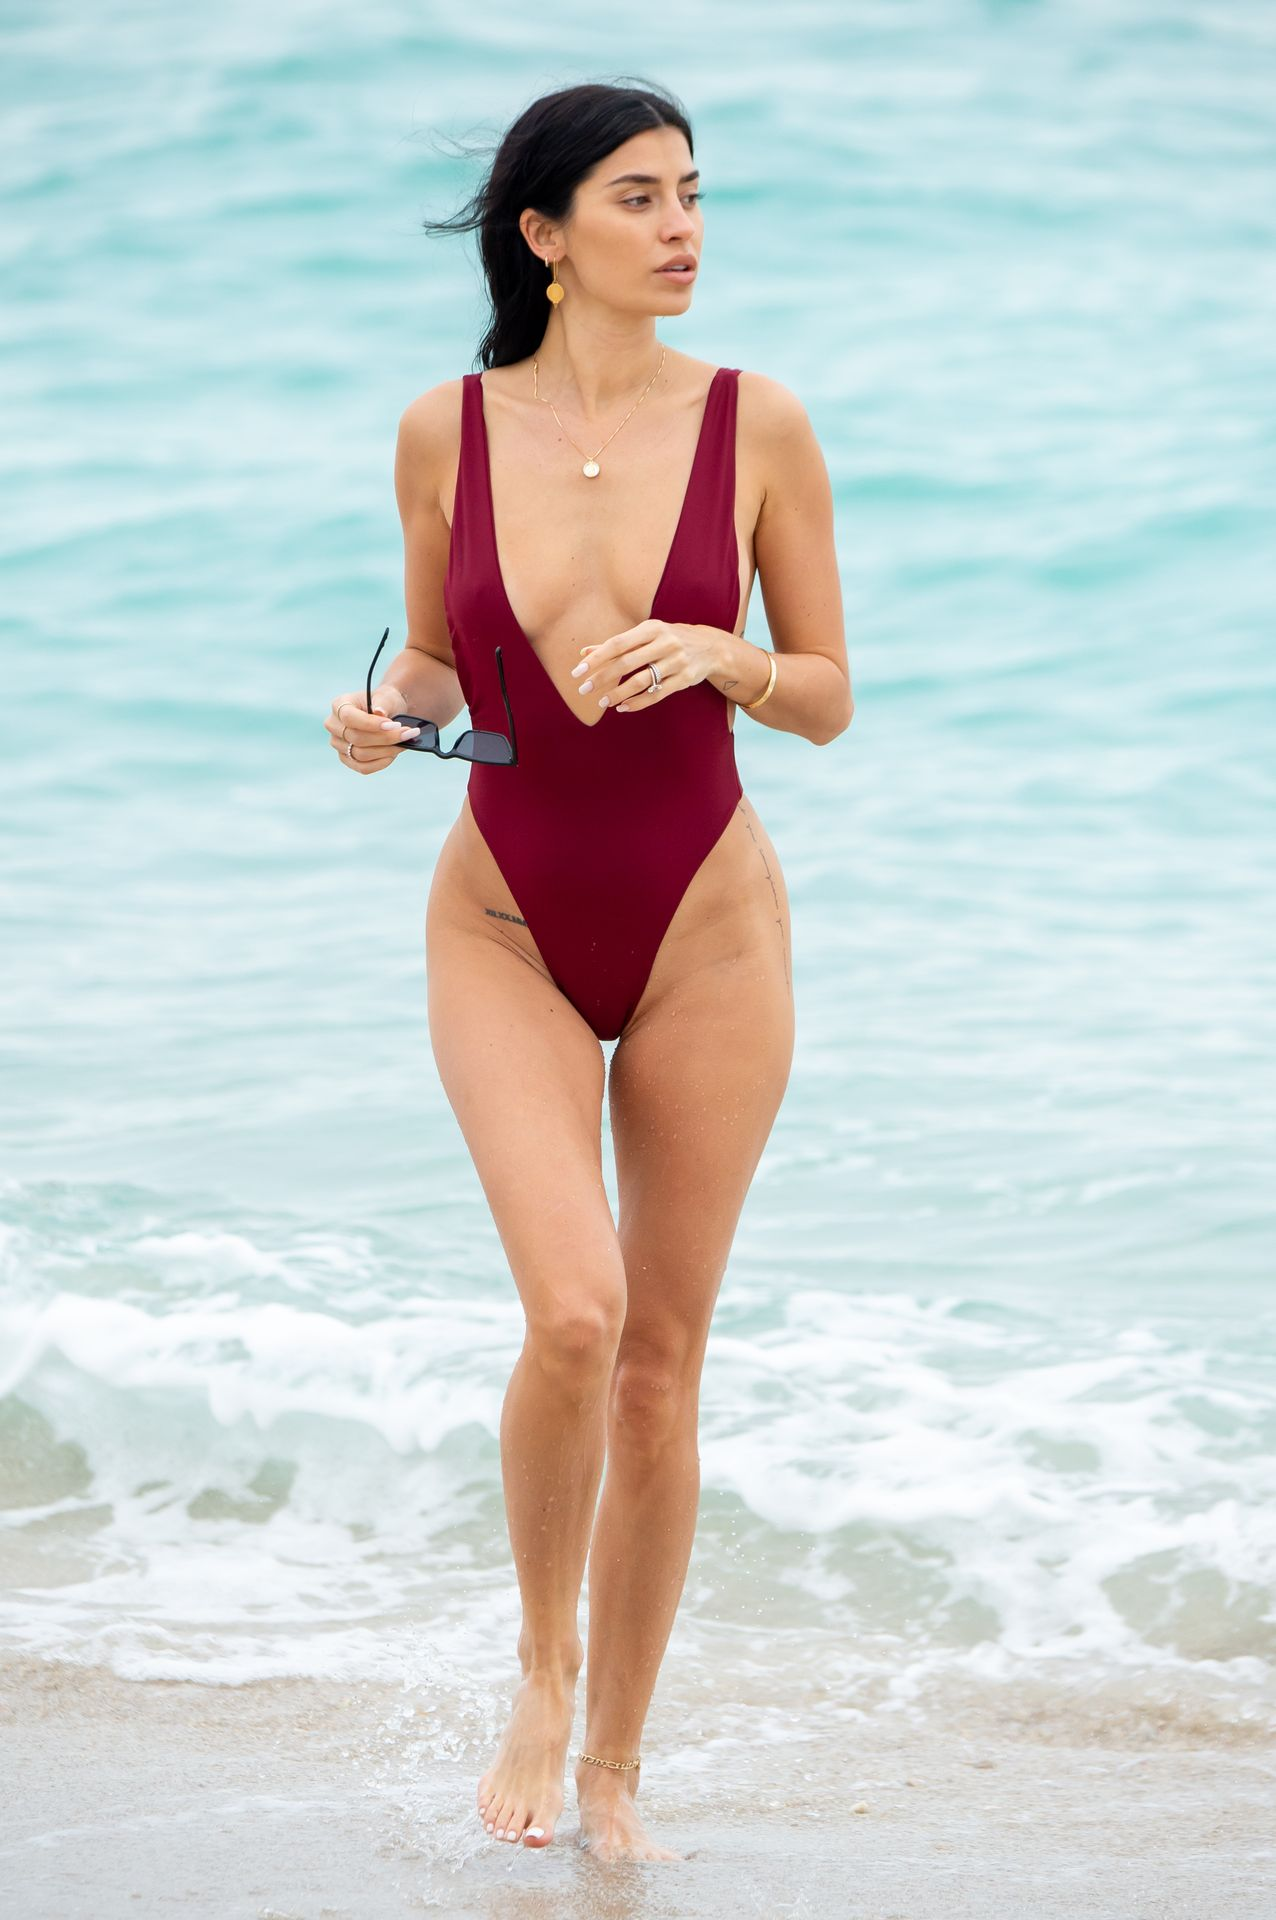 Nicole Williams Shows Off Her Amazing Curves In Miami 0015